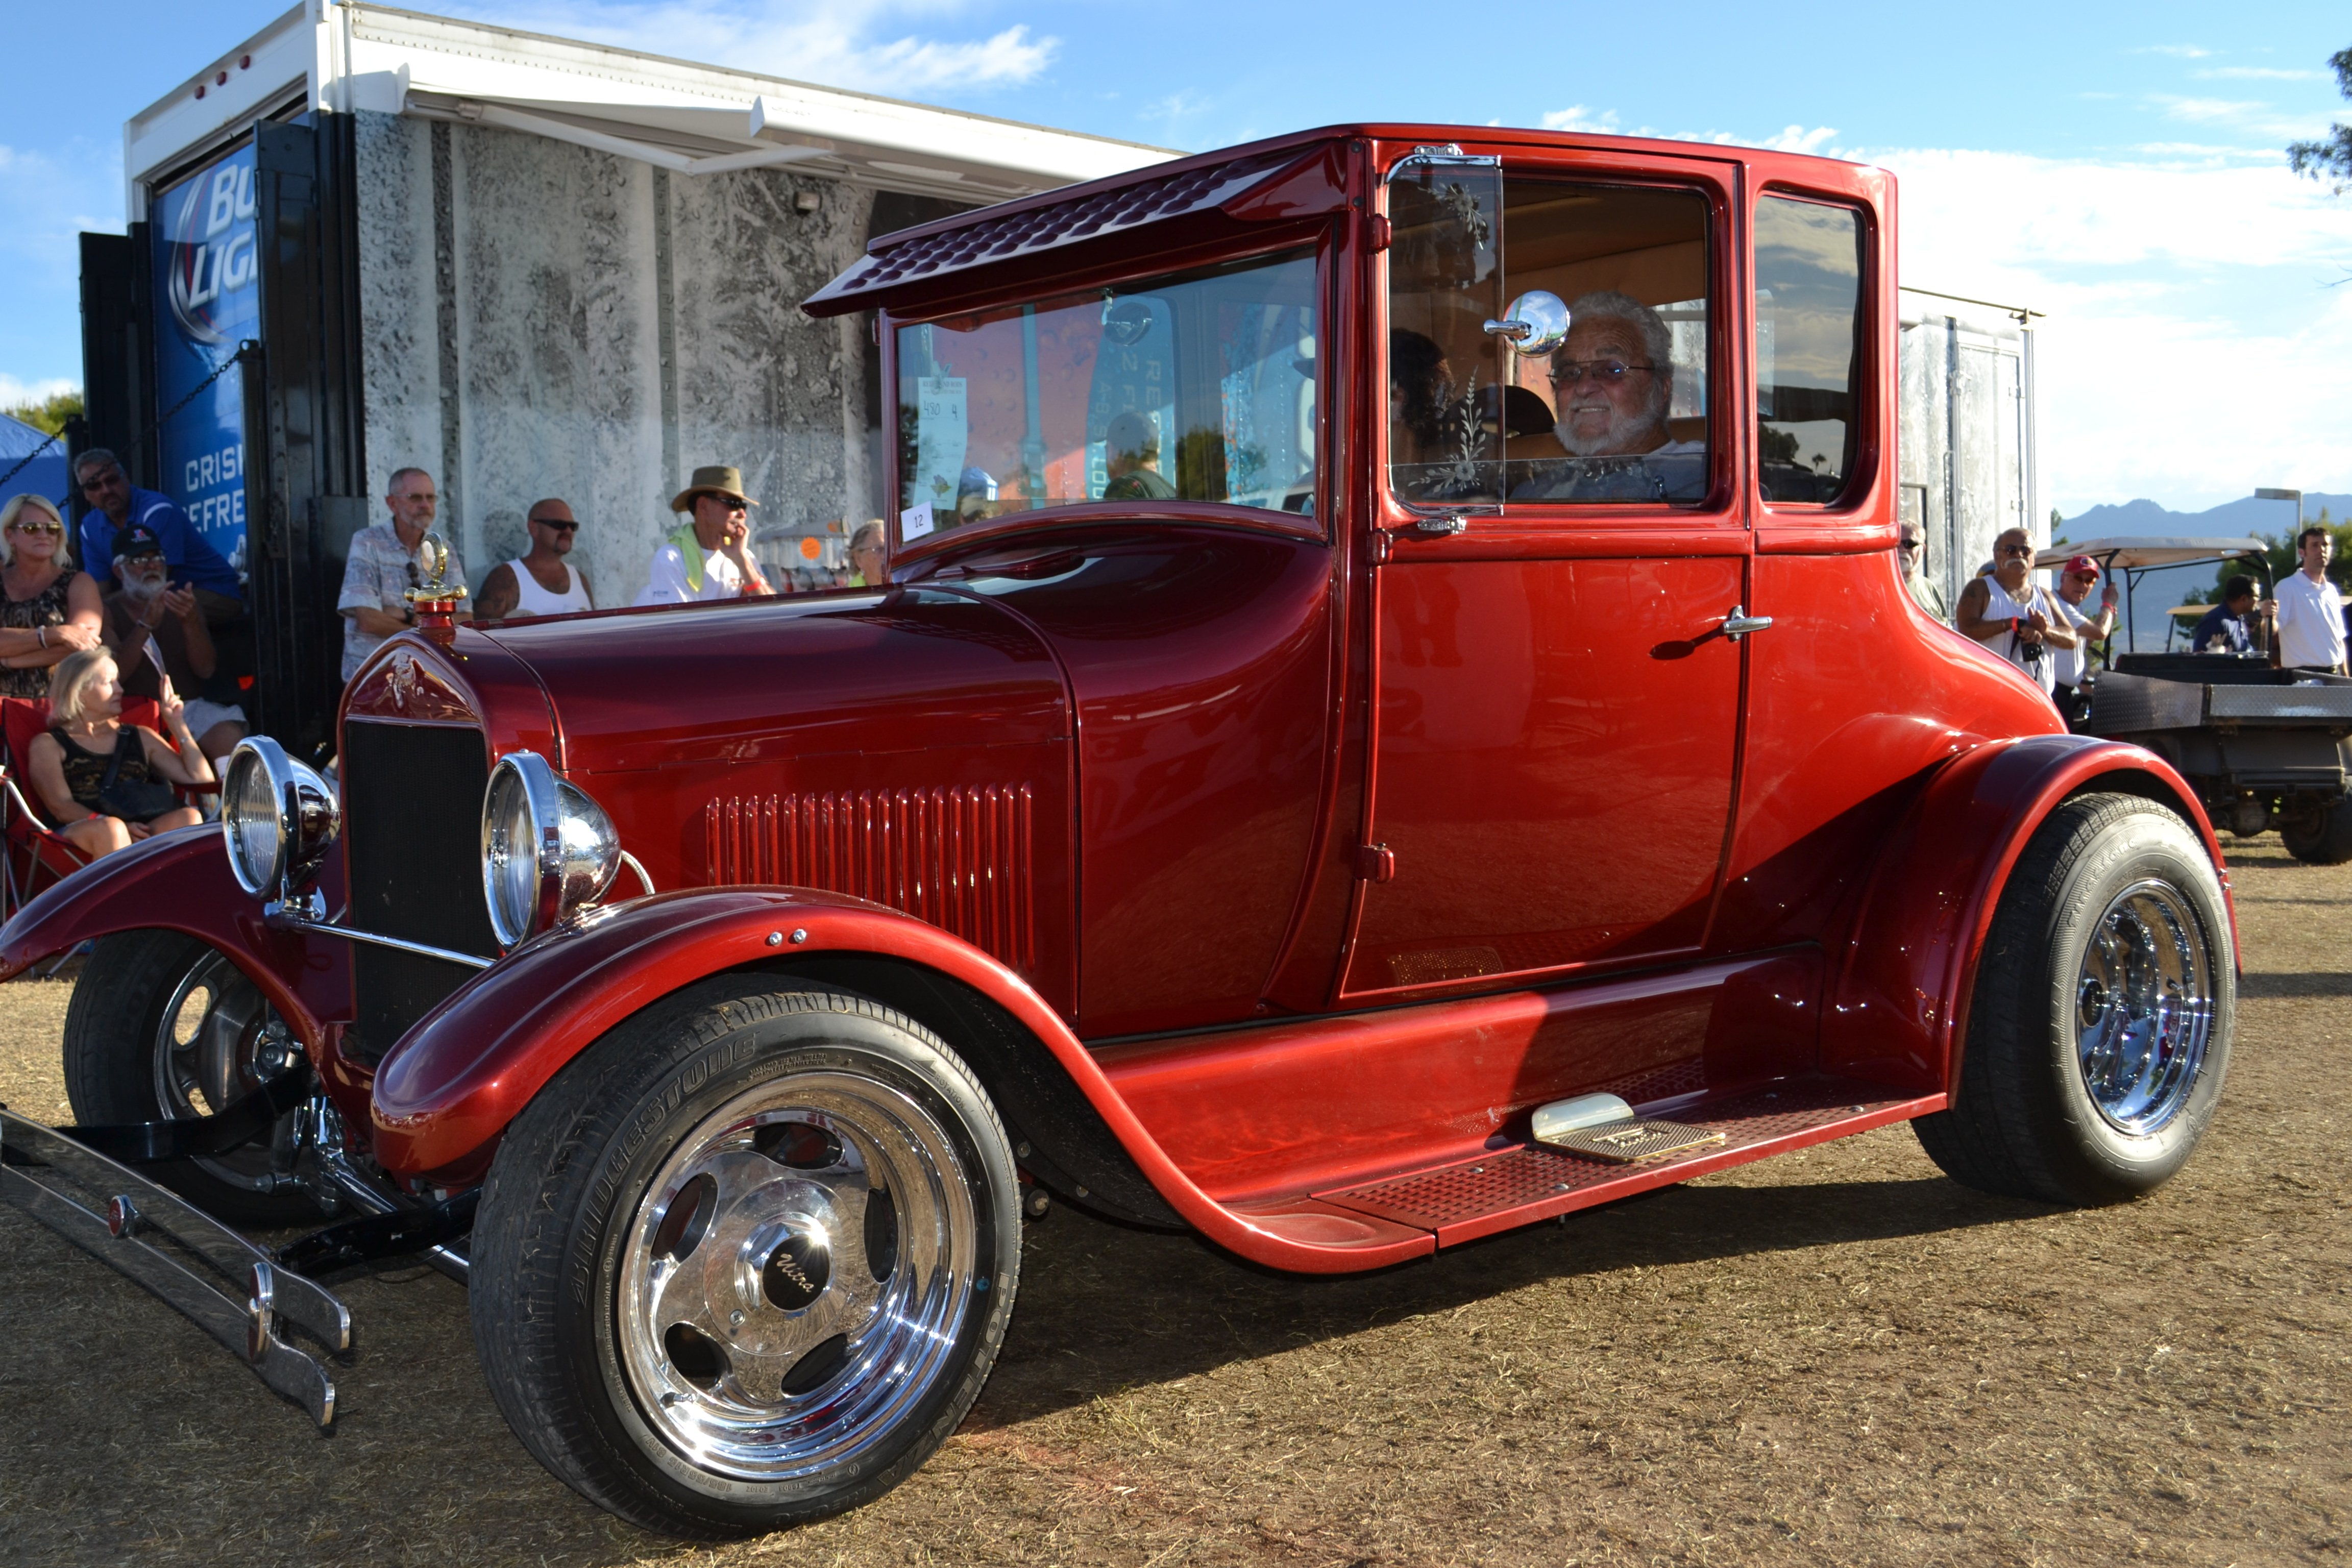 1926 Ford Model-T Coupe Hotrod Hot Rod USA -01 wallpaper | 4608x3072 ...